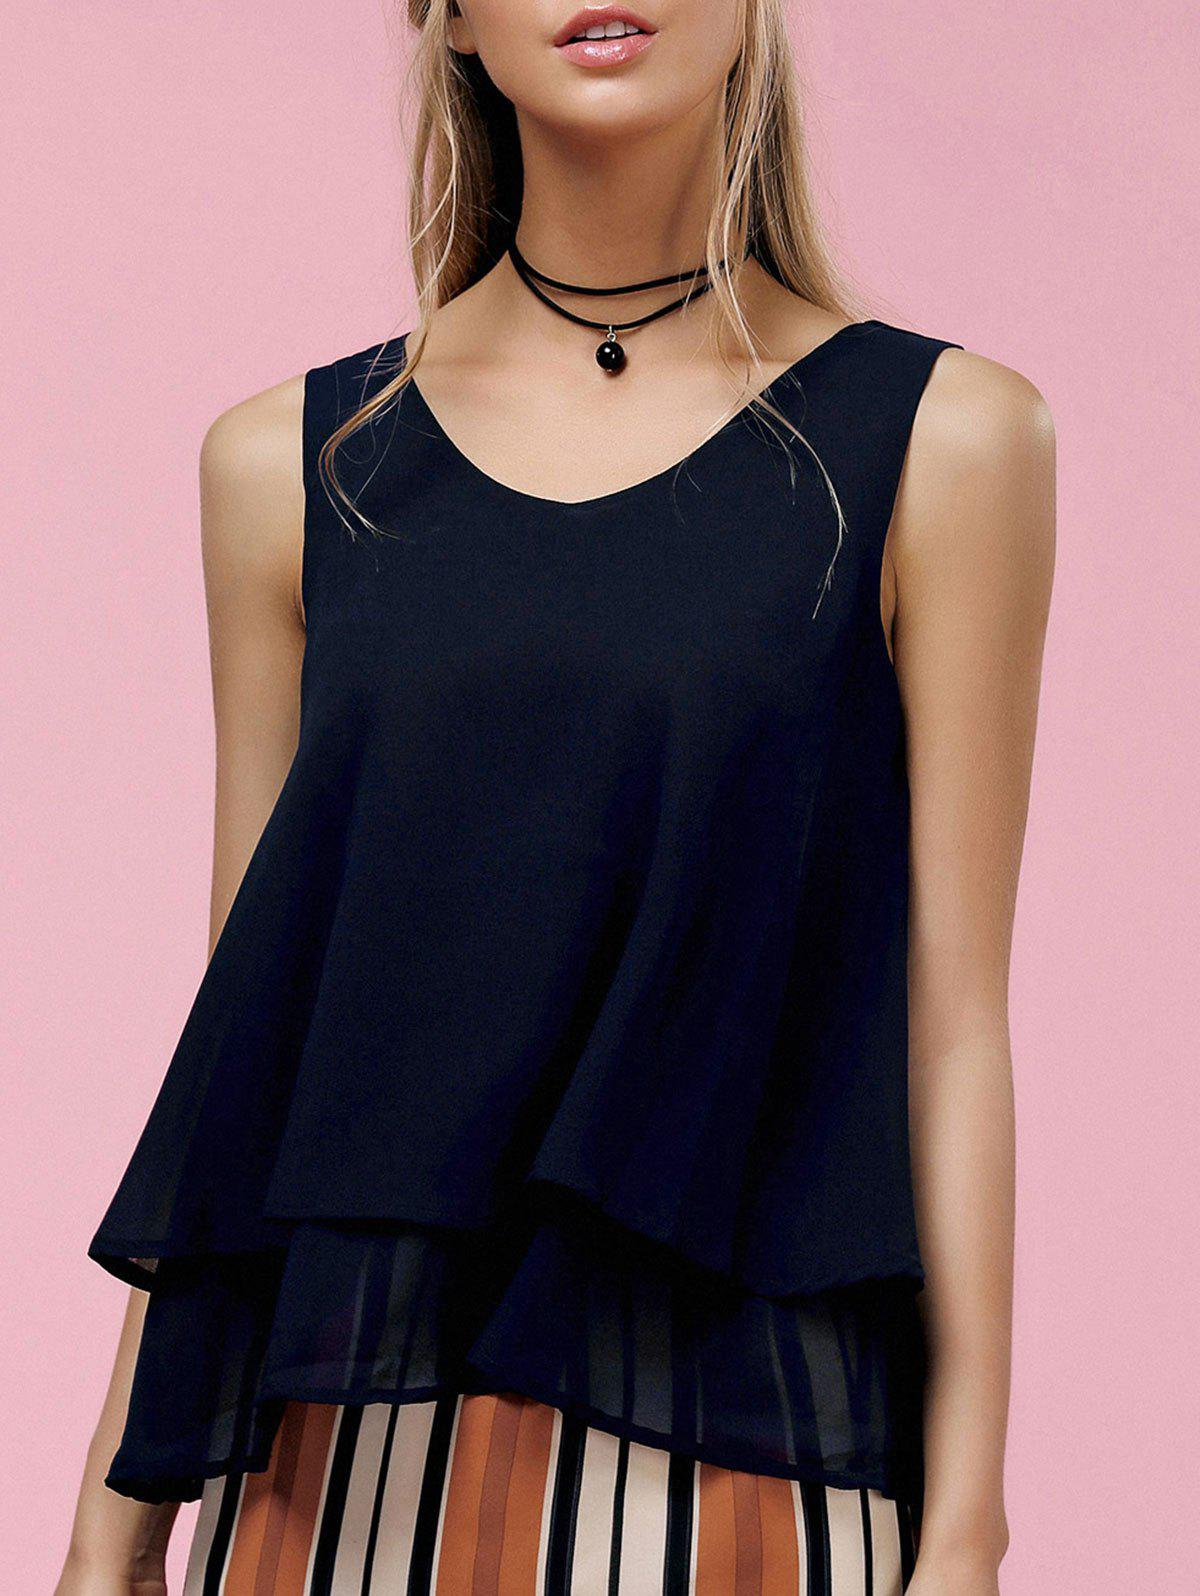 Simple Round Collar Layered Solid Color Women's Tank Top